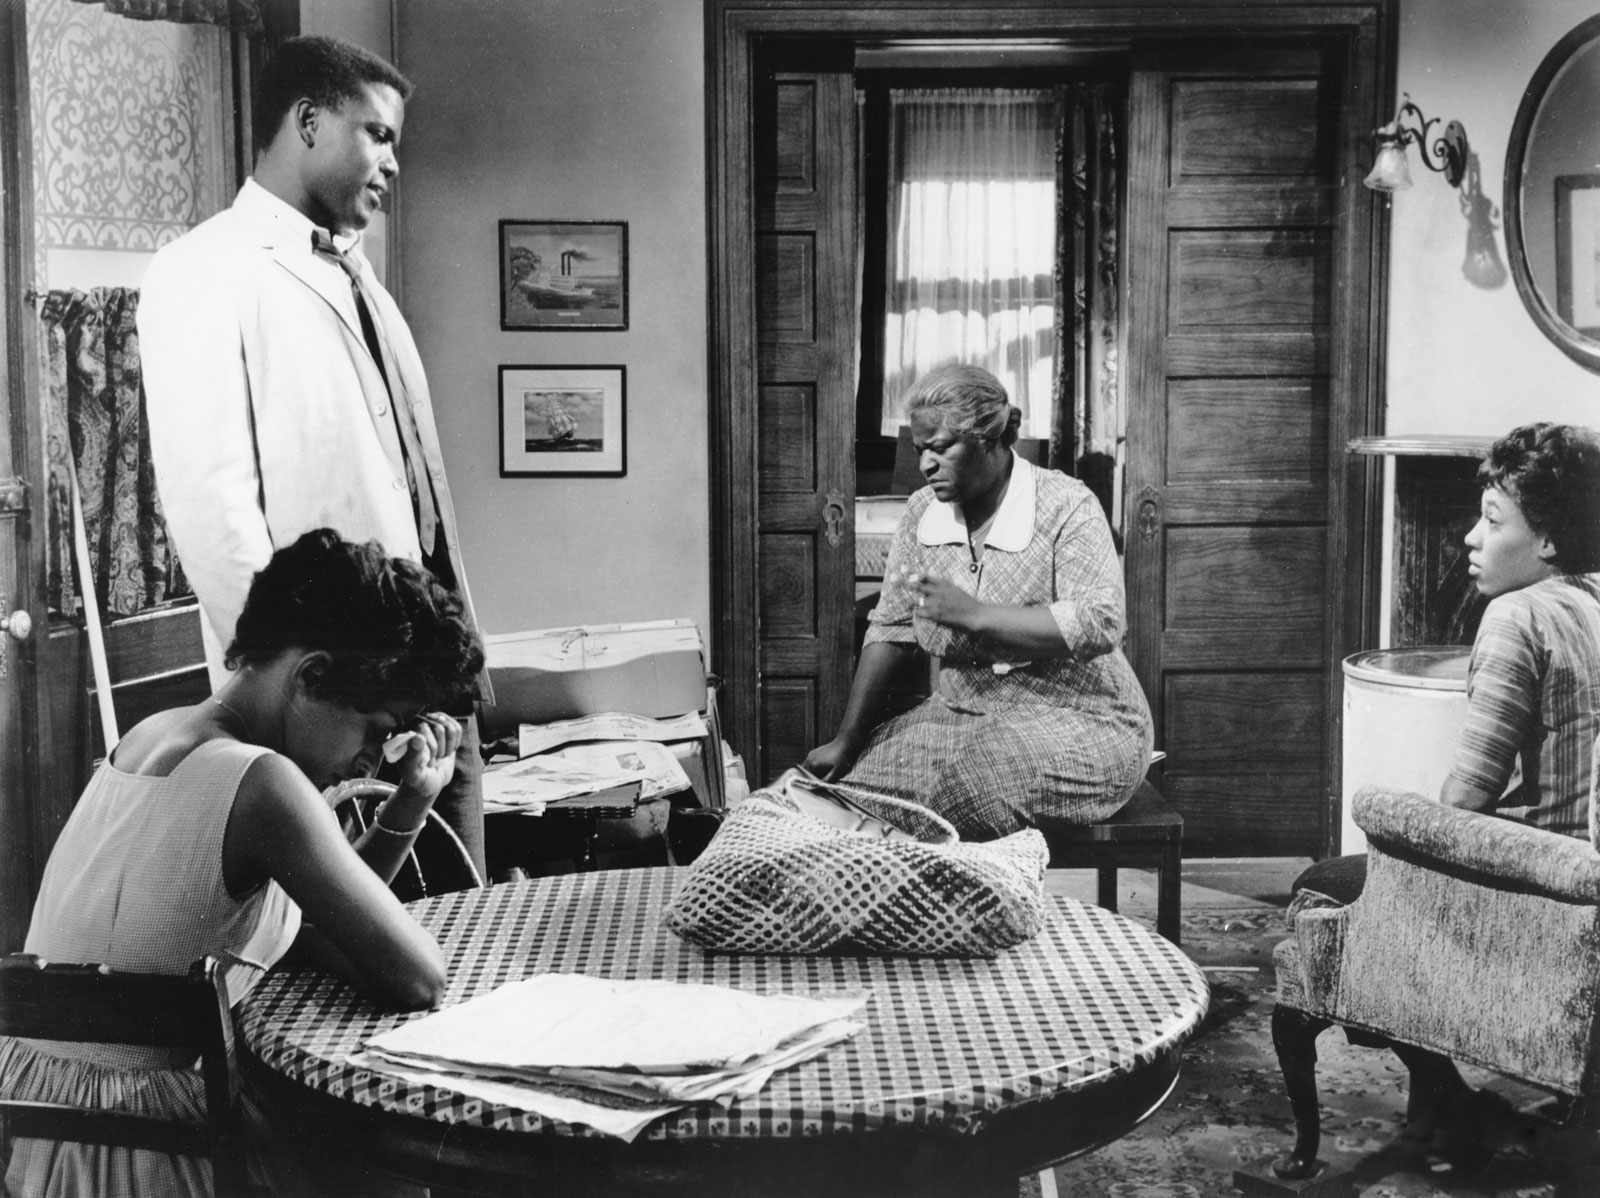 a raisin in the sun family A raisin in the sun details the story of a working-class family struggling to make ends meet the youngers are then faced with a difficult decision that brings their colored heritage and the lives of their ancestors to the forefront.